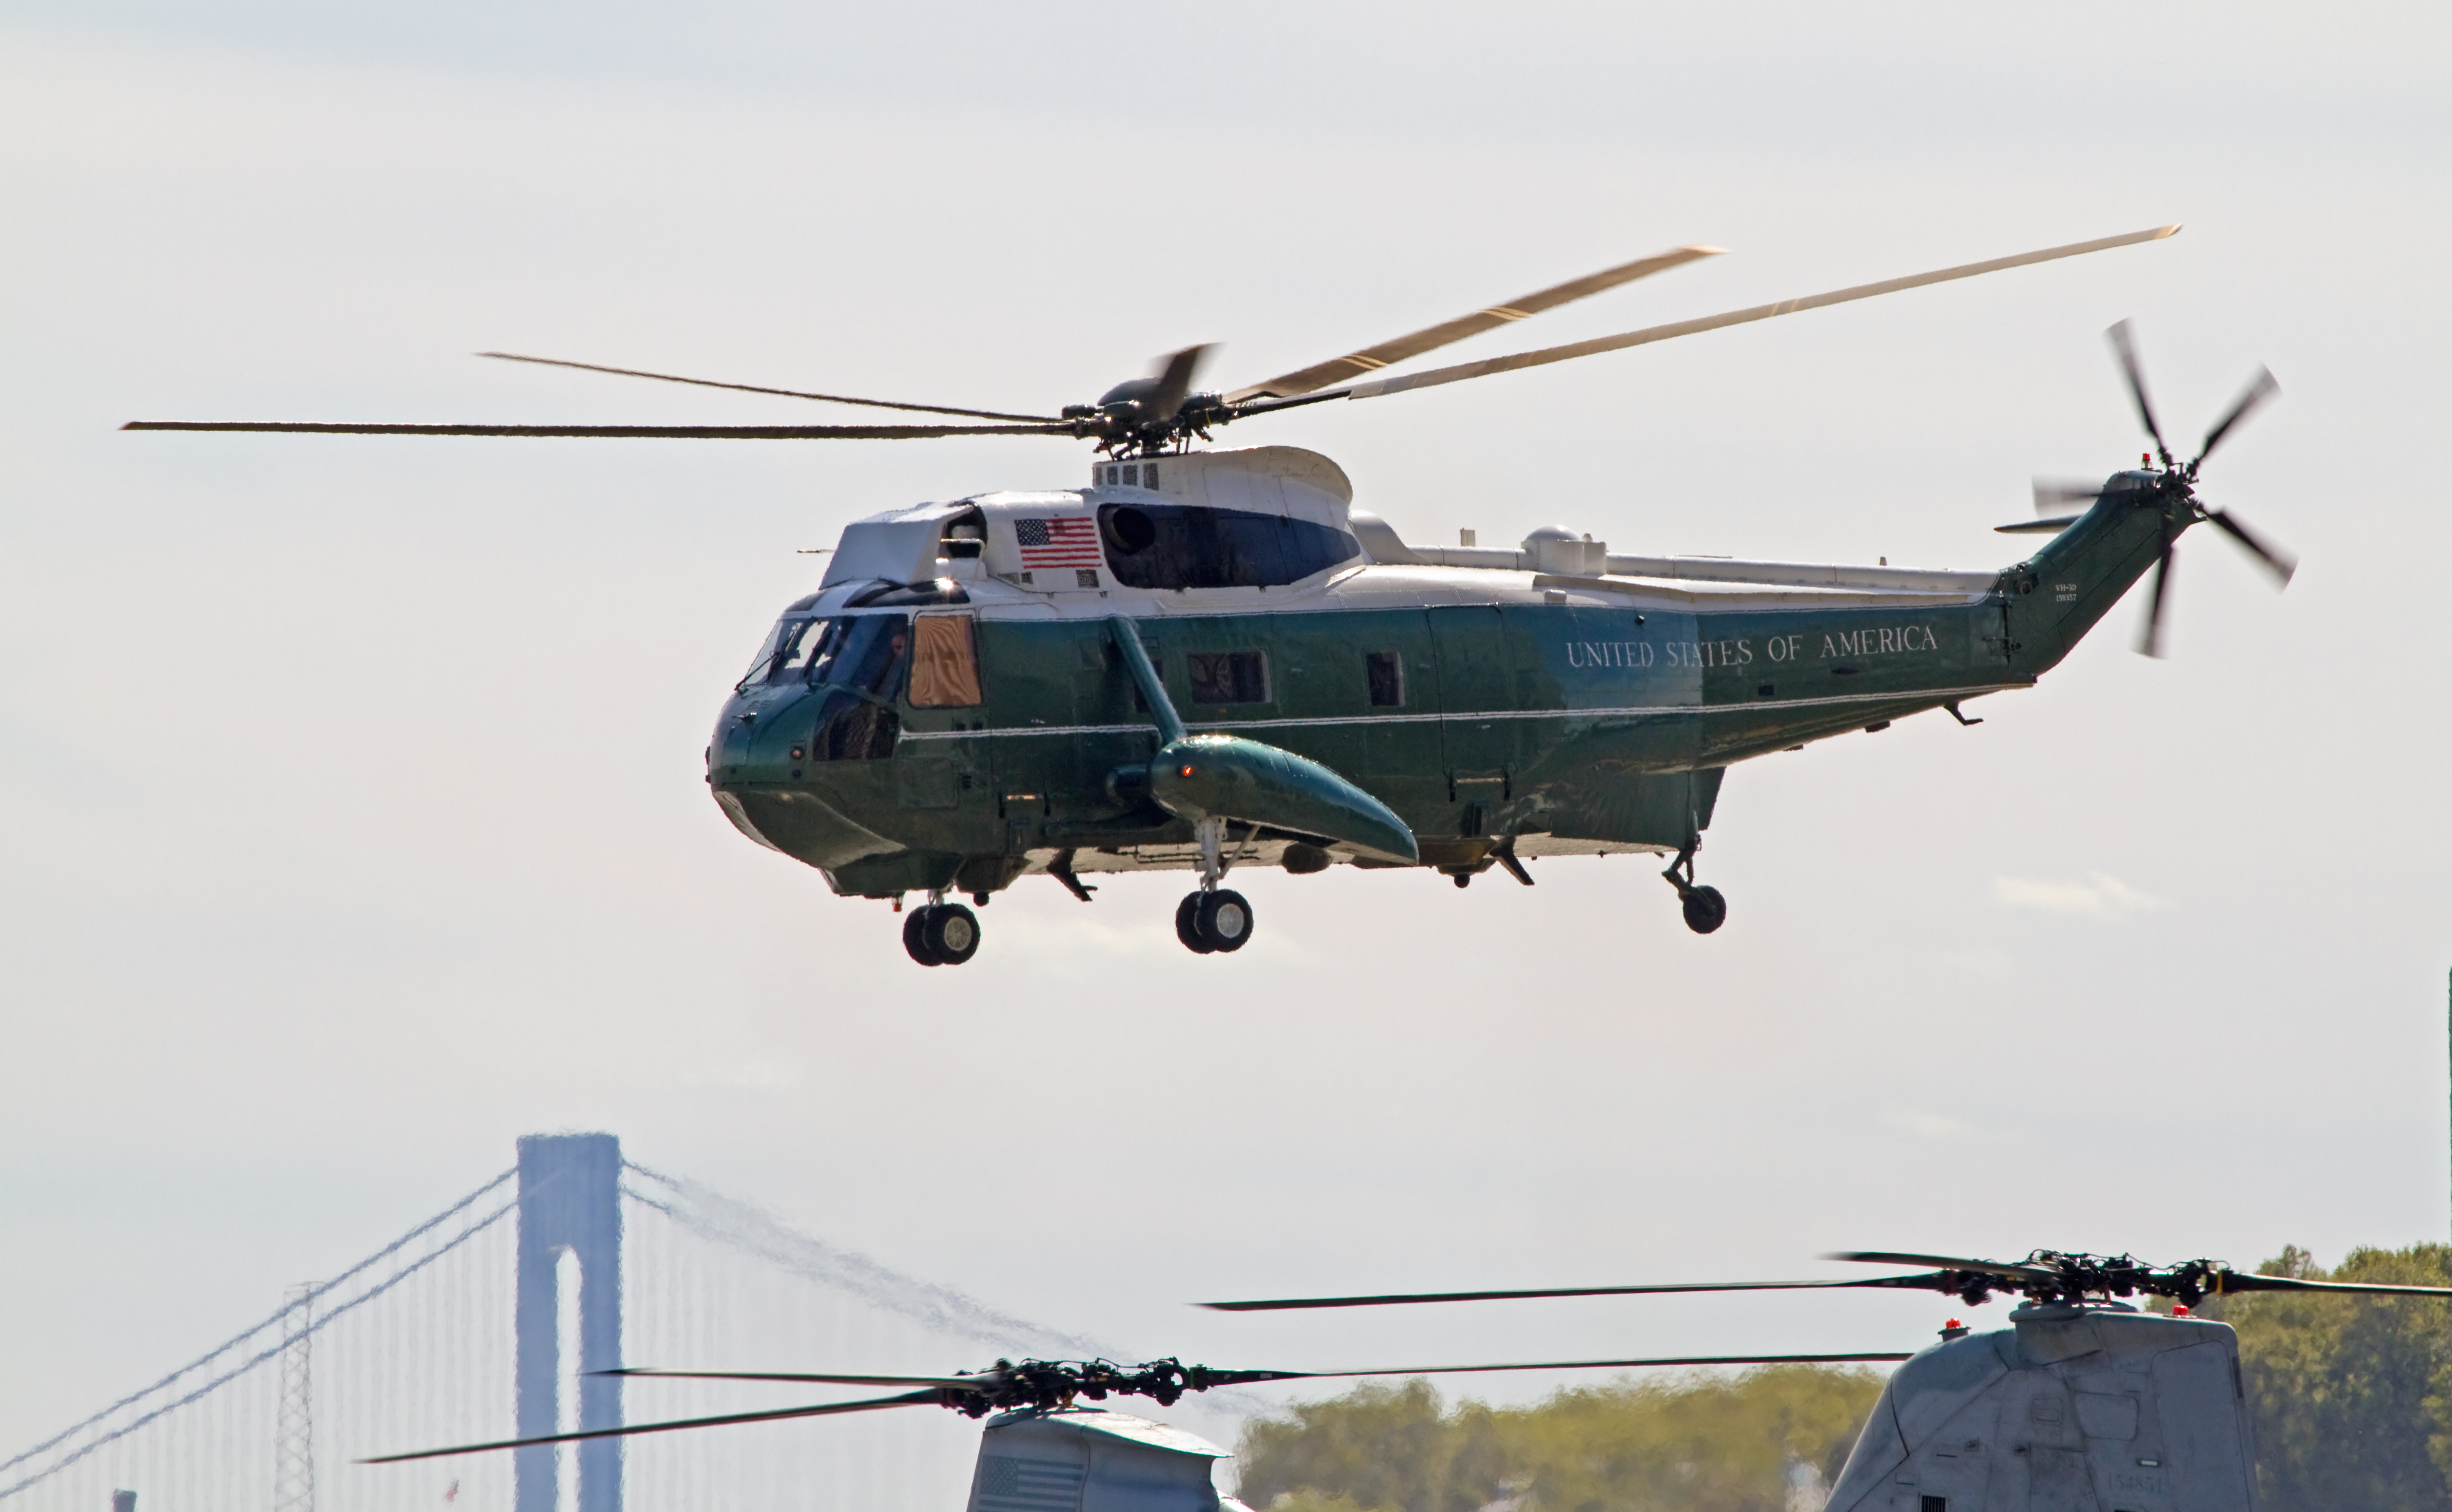 File:United States of America Helicopter (6165173584).jpg ...